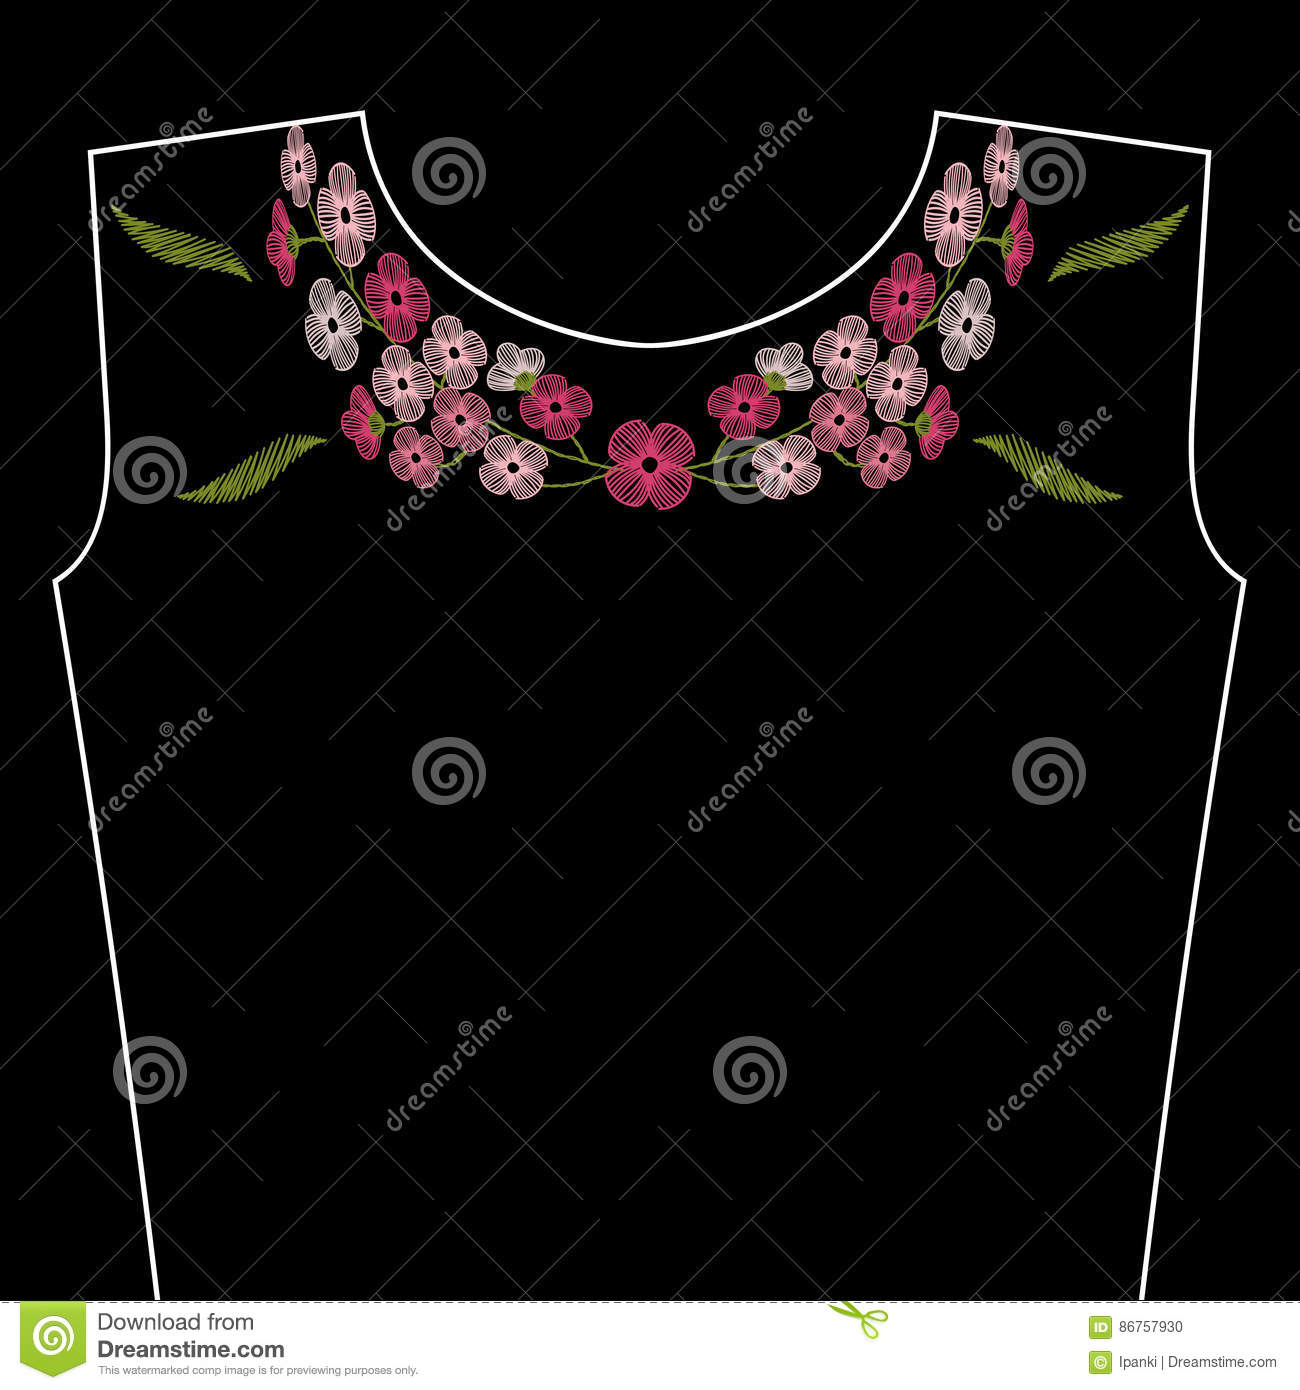 Vintage Embroidery Stitches With Spring Pink Flowers For Neckline